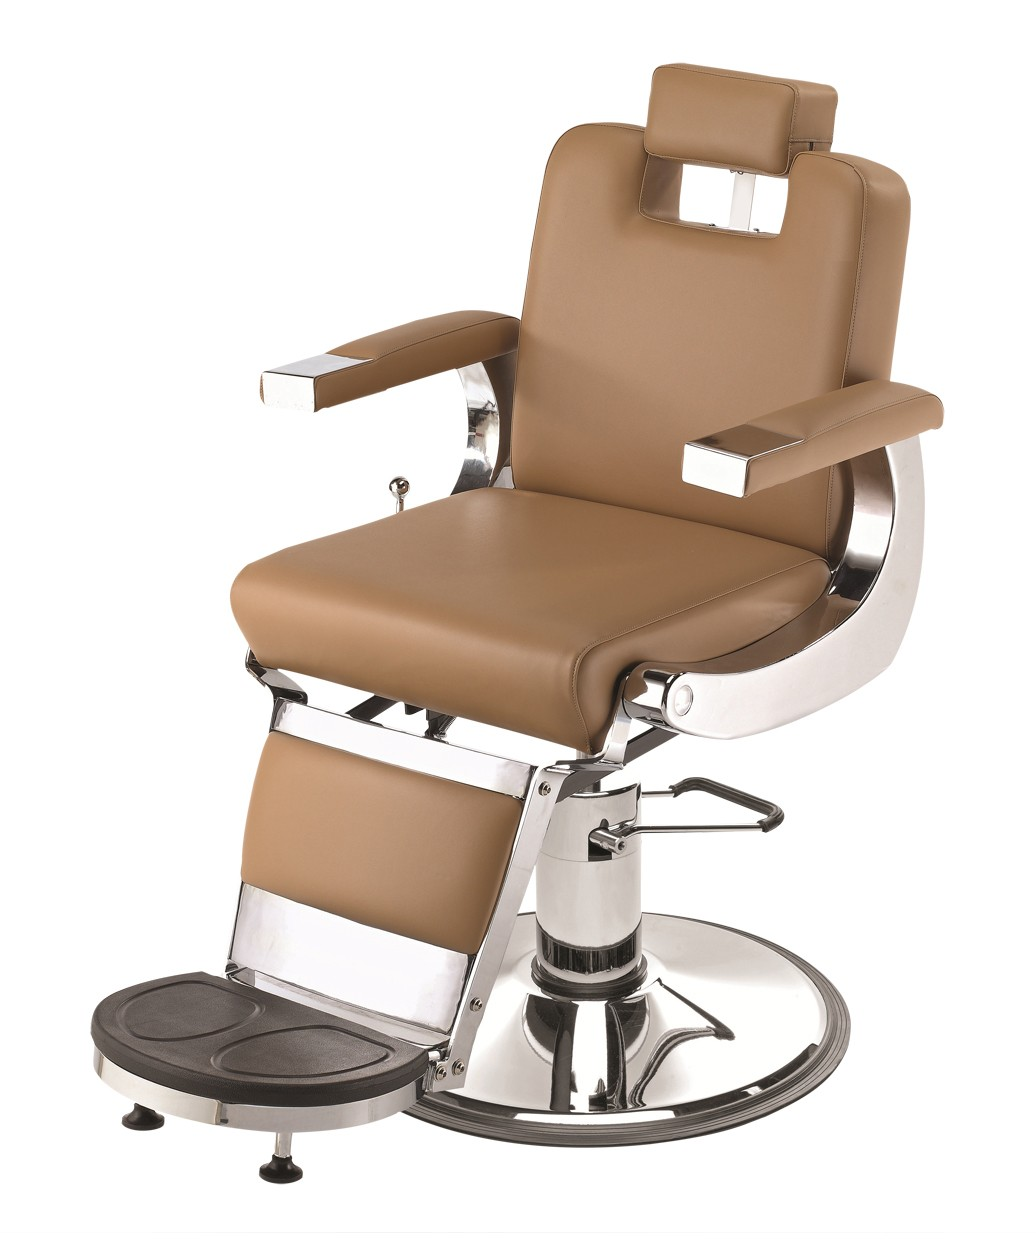 4 Operator Pibbs 659 Capo Barber Package Pibbs 659 Capo Barber Chair